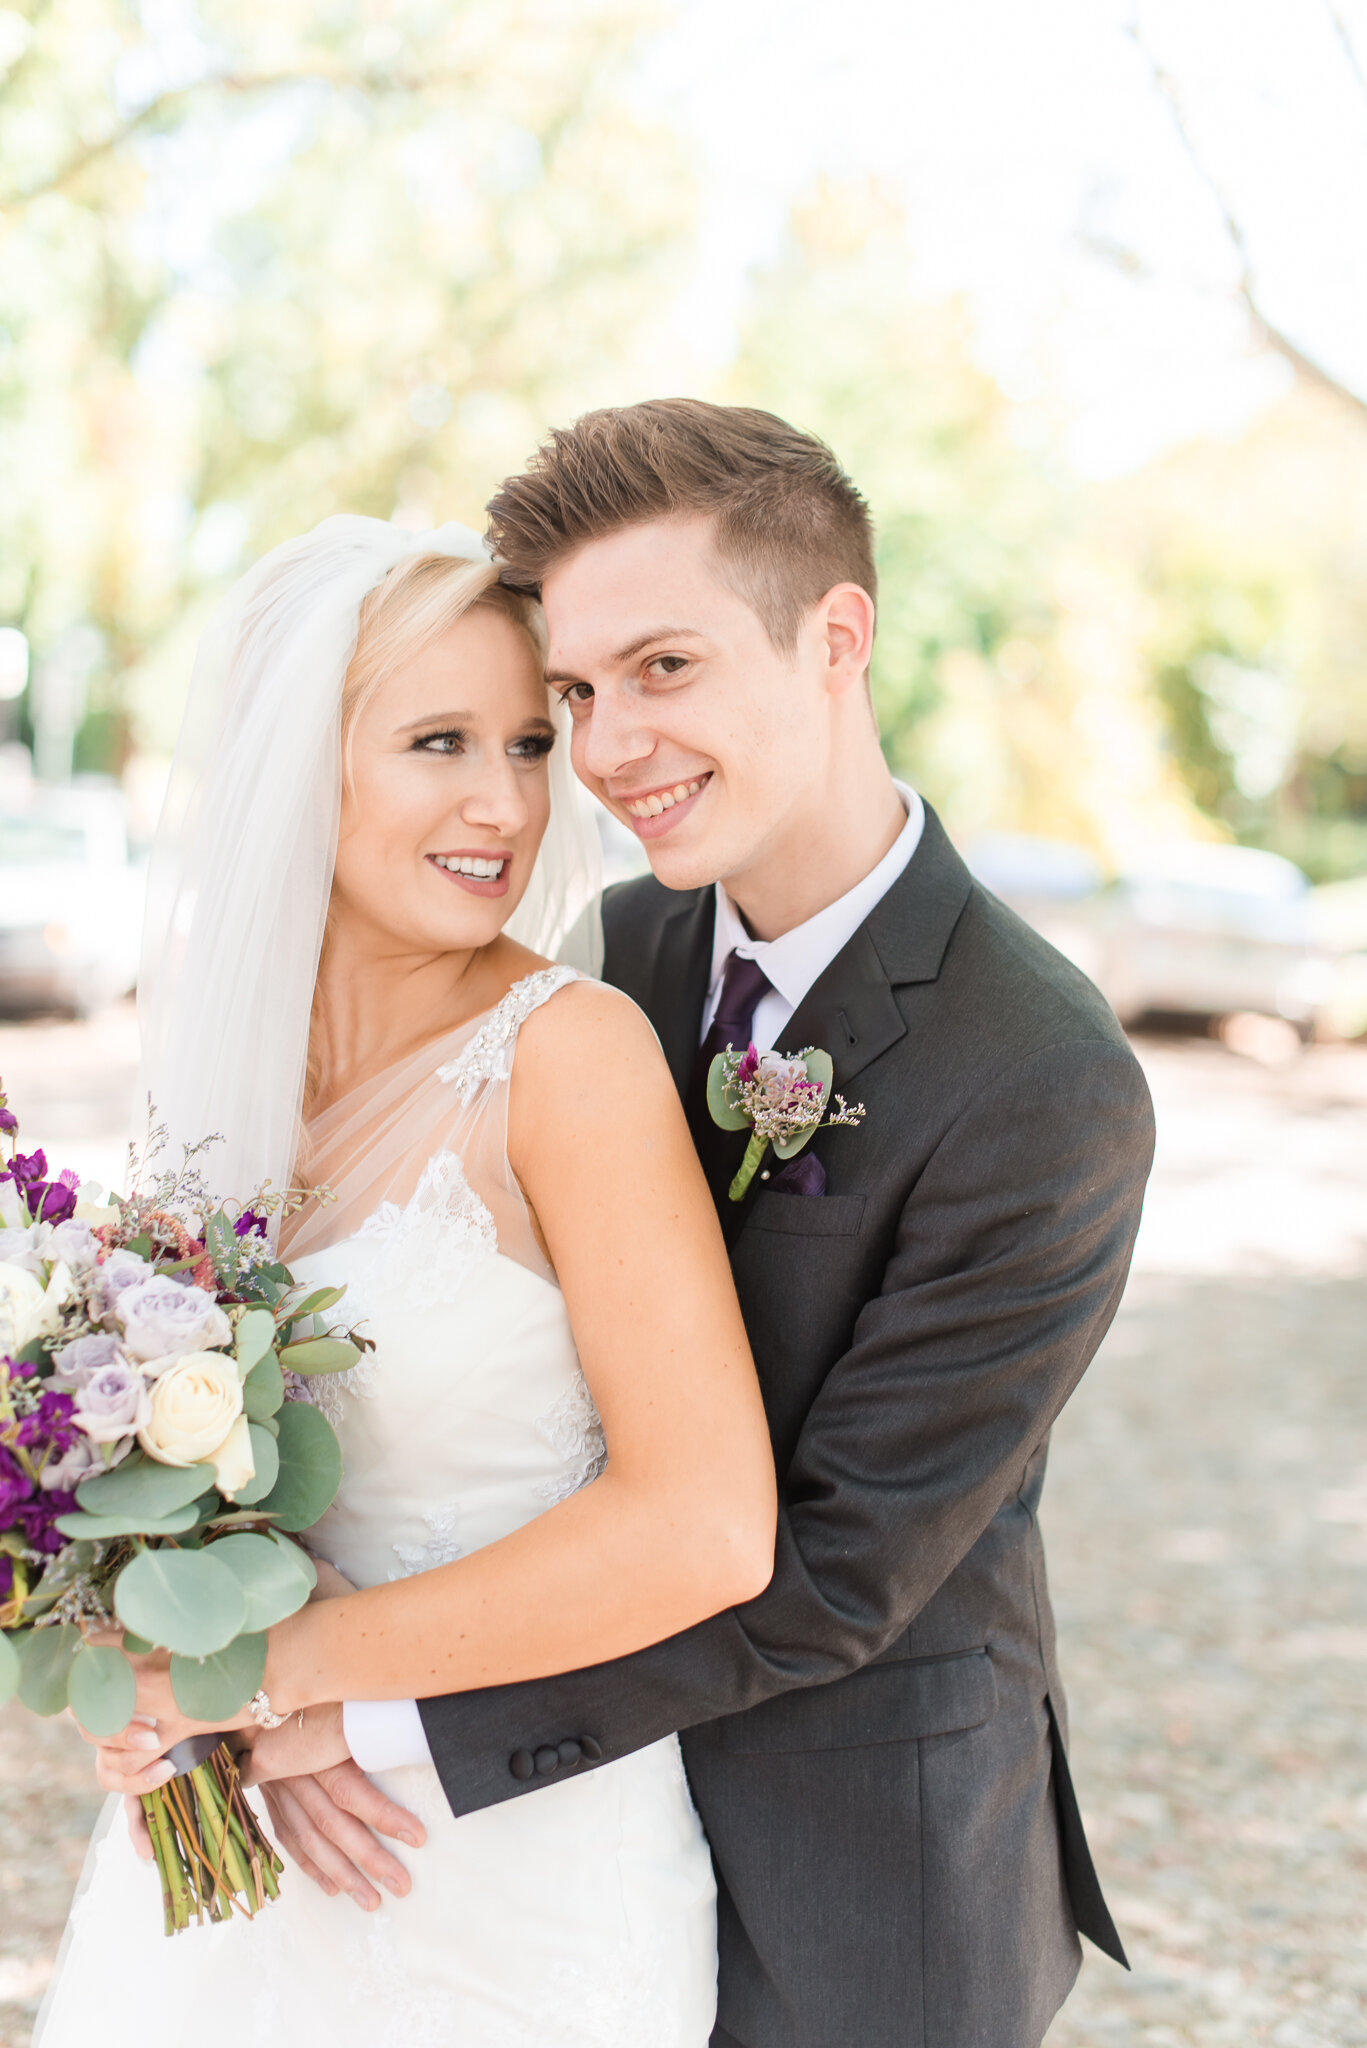 Downtown Indianapolis Wedding at Cyrus Place6950.jpg